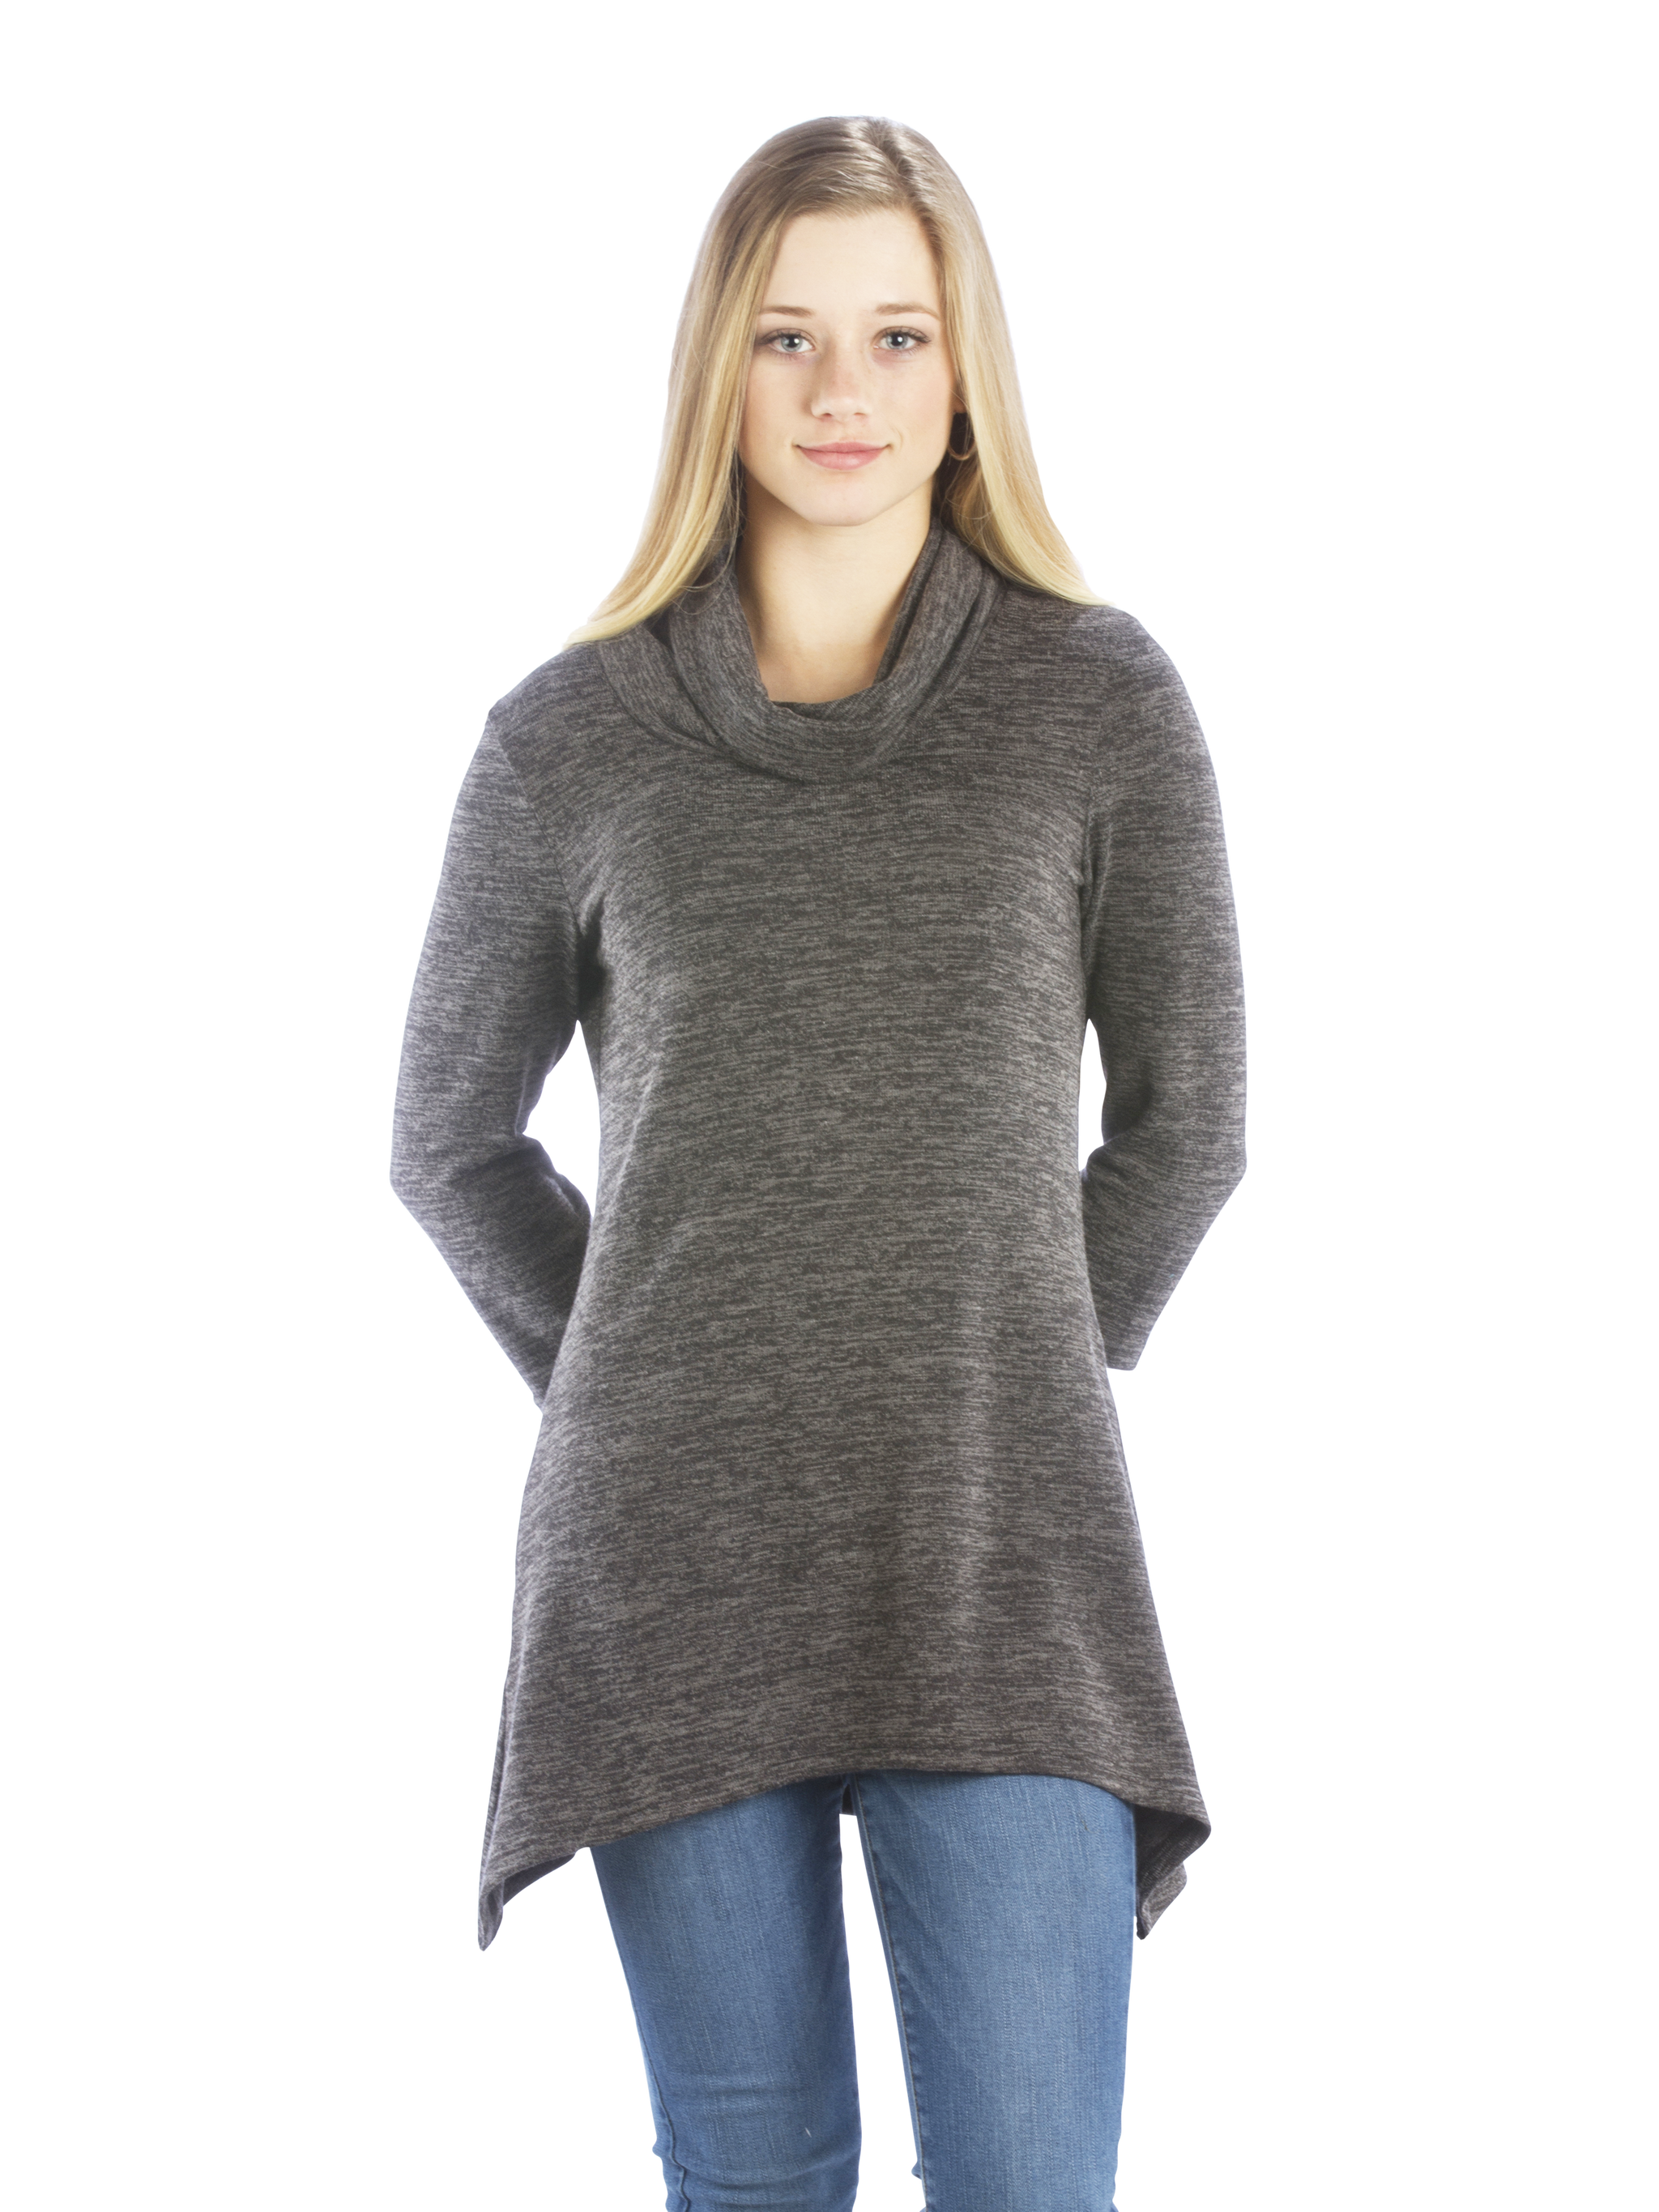 Sweater Tunic with Cowl Neck and Irregular Handkerchief Hem, Charcoal